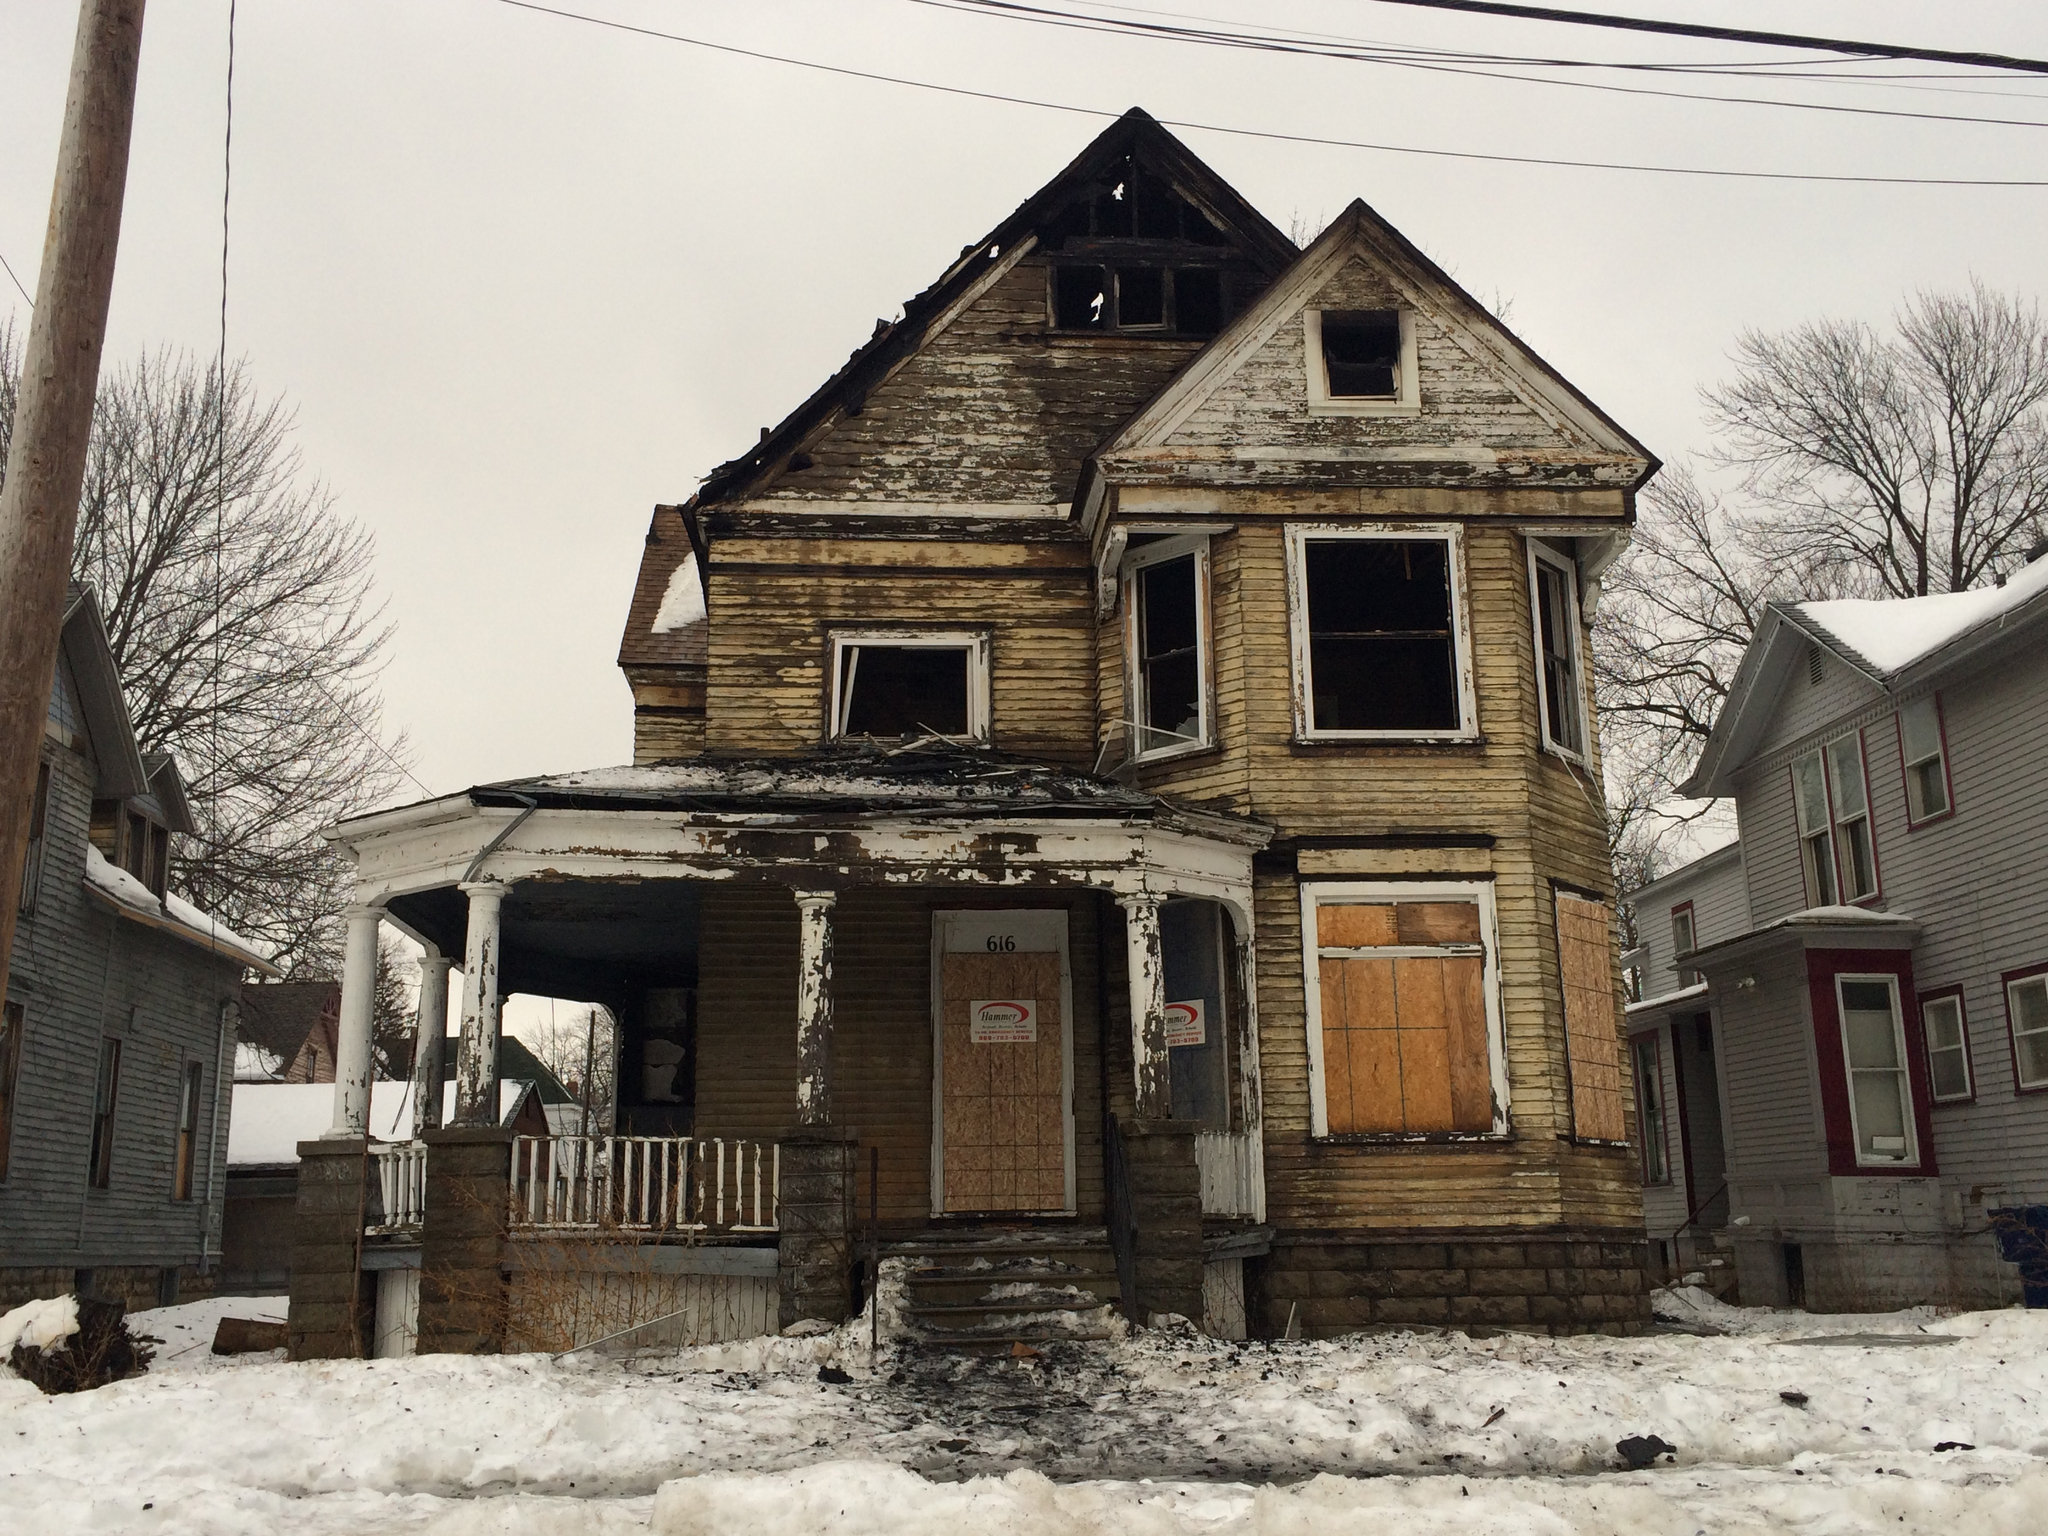 No injuries reported in blaze at abandoned house on Grant Street in ...